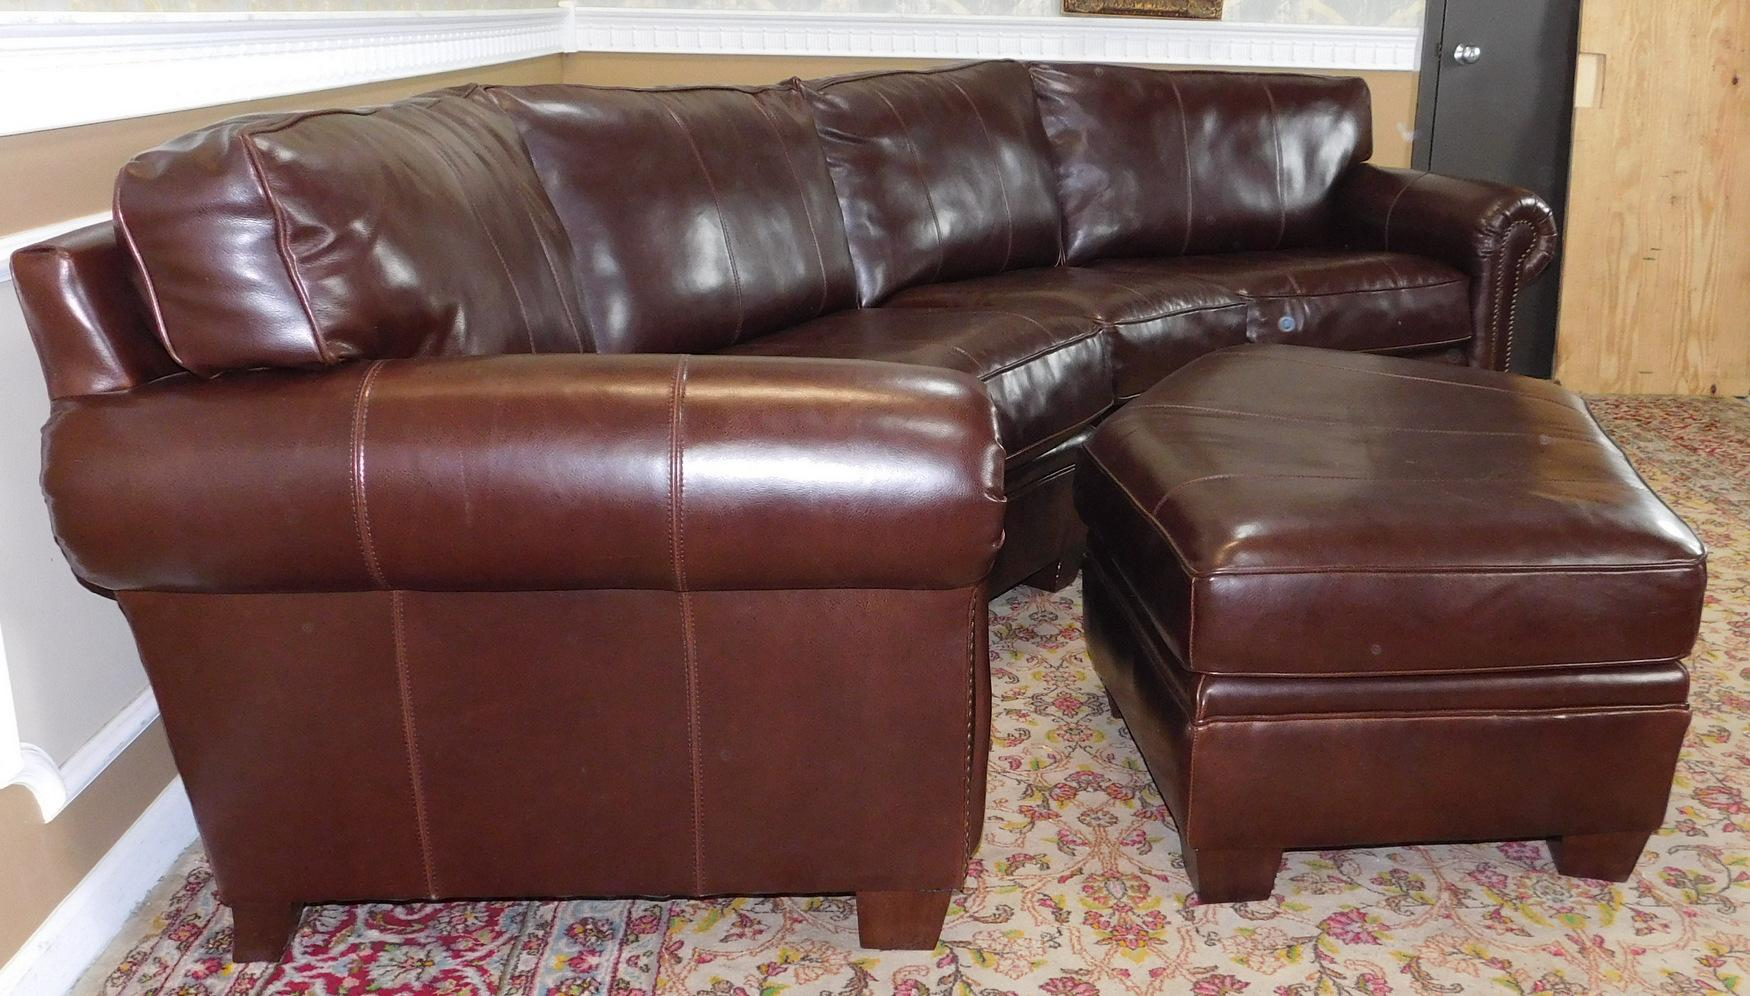 3-Piece Bernhardt Brown Leather Sectional Sofa u0026 Ottoman - Image 7 ...  sc 1 st  Chairish : bernhardt sectional leather - Sectionals, Sofas & Couches